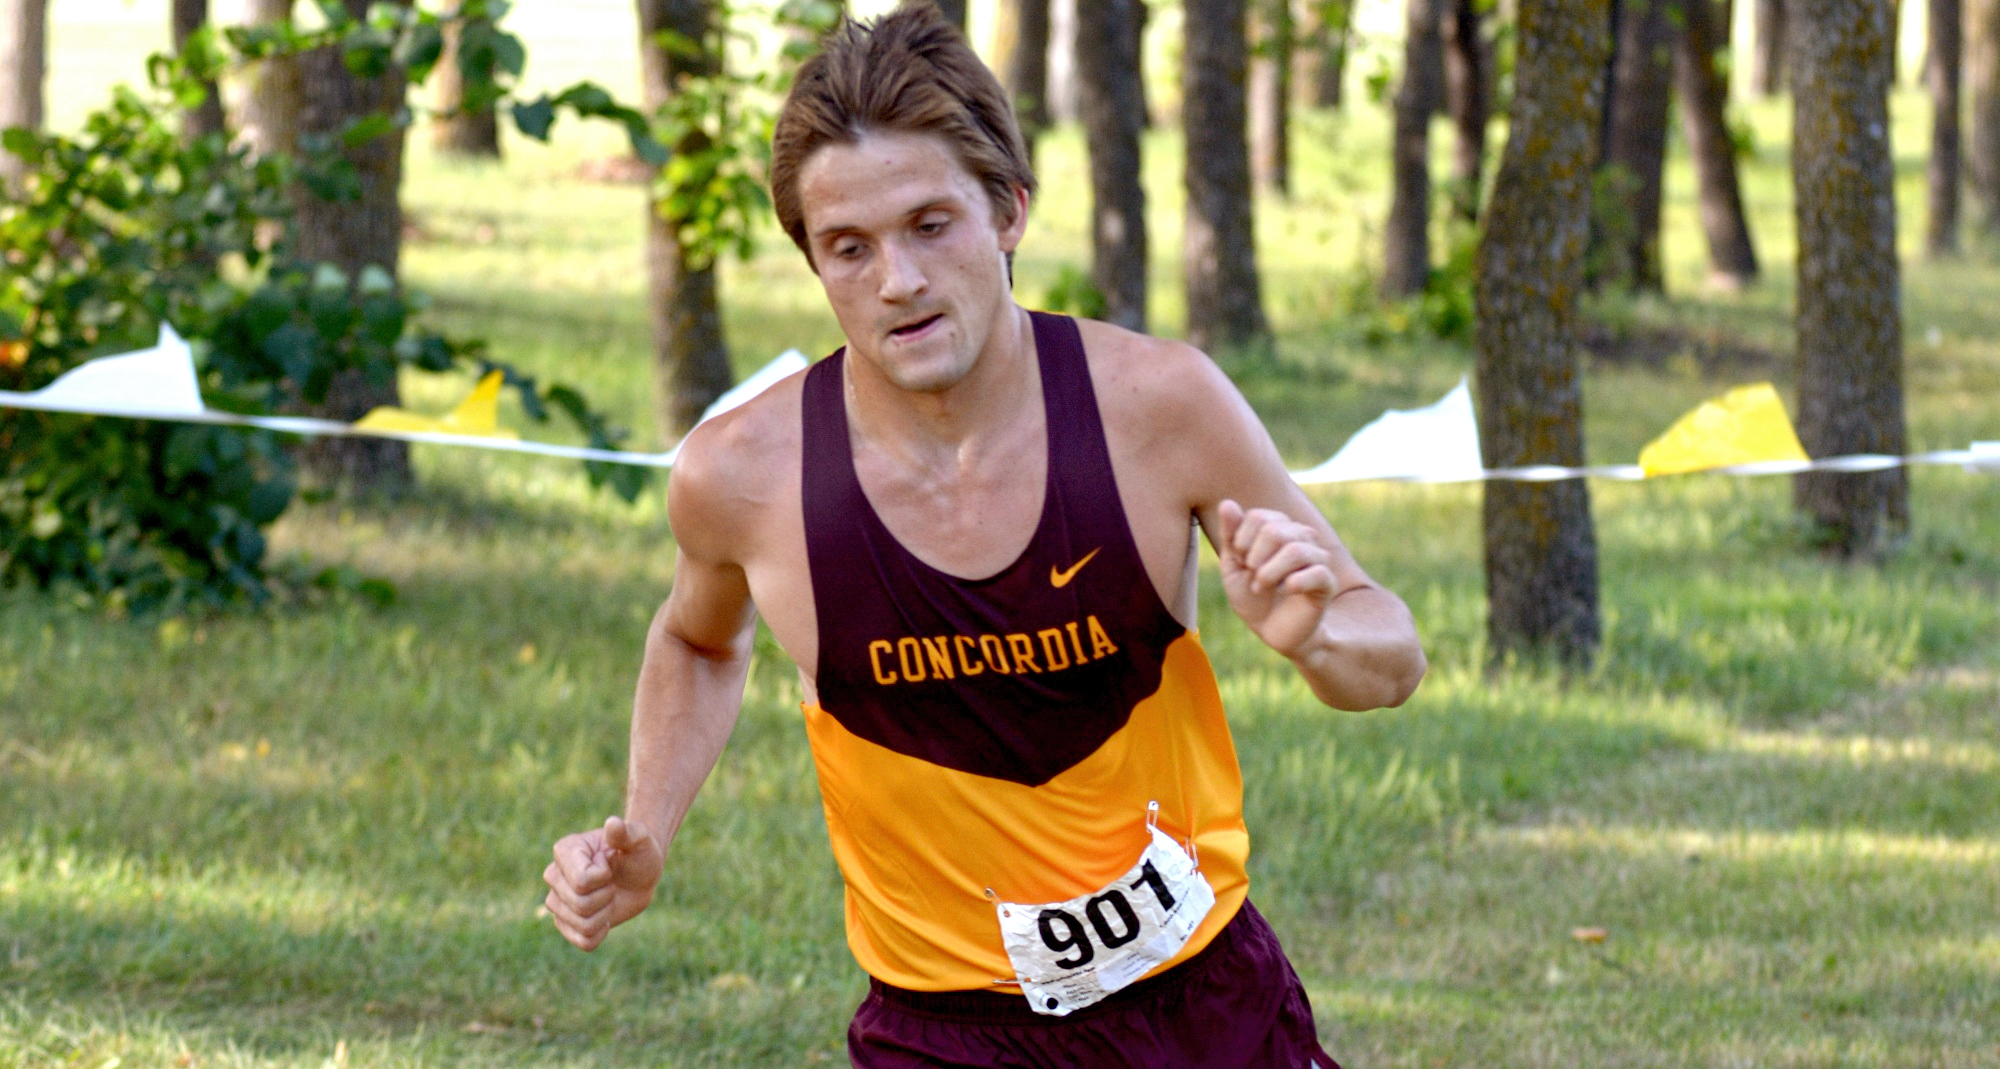 Junior Brandon Quibell led the Cobbers at the St. Olaf Invite. He has led the team in both meets he has participated in this season.